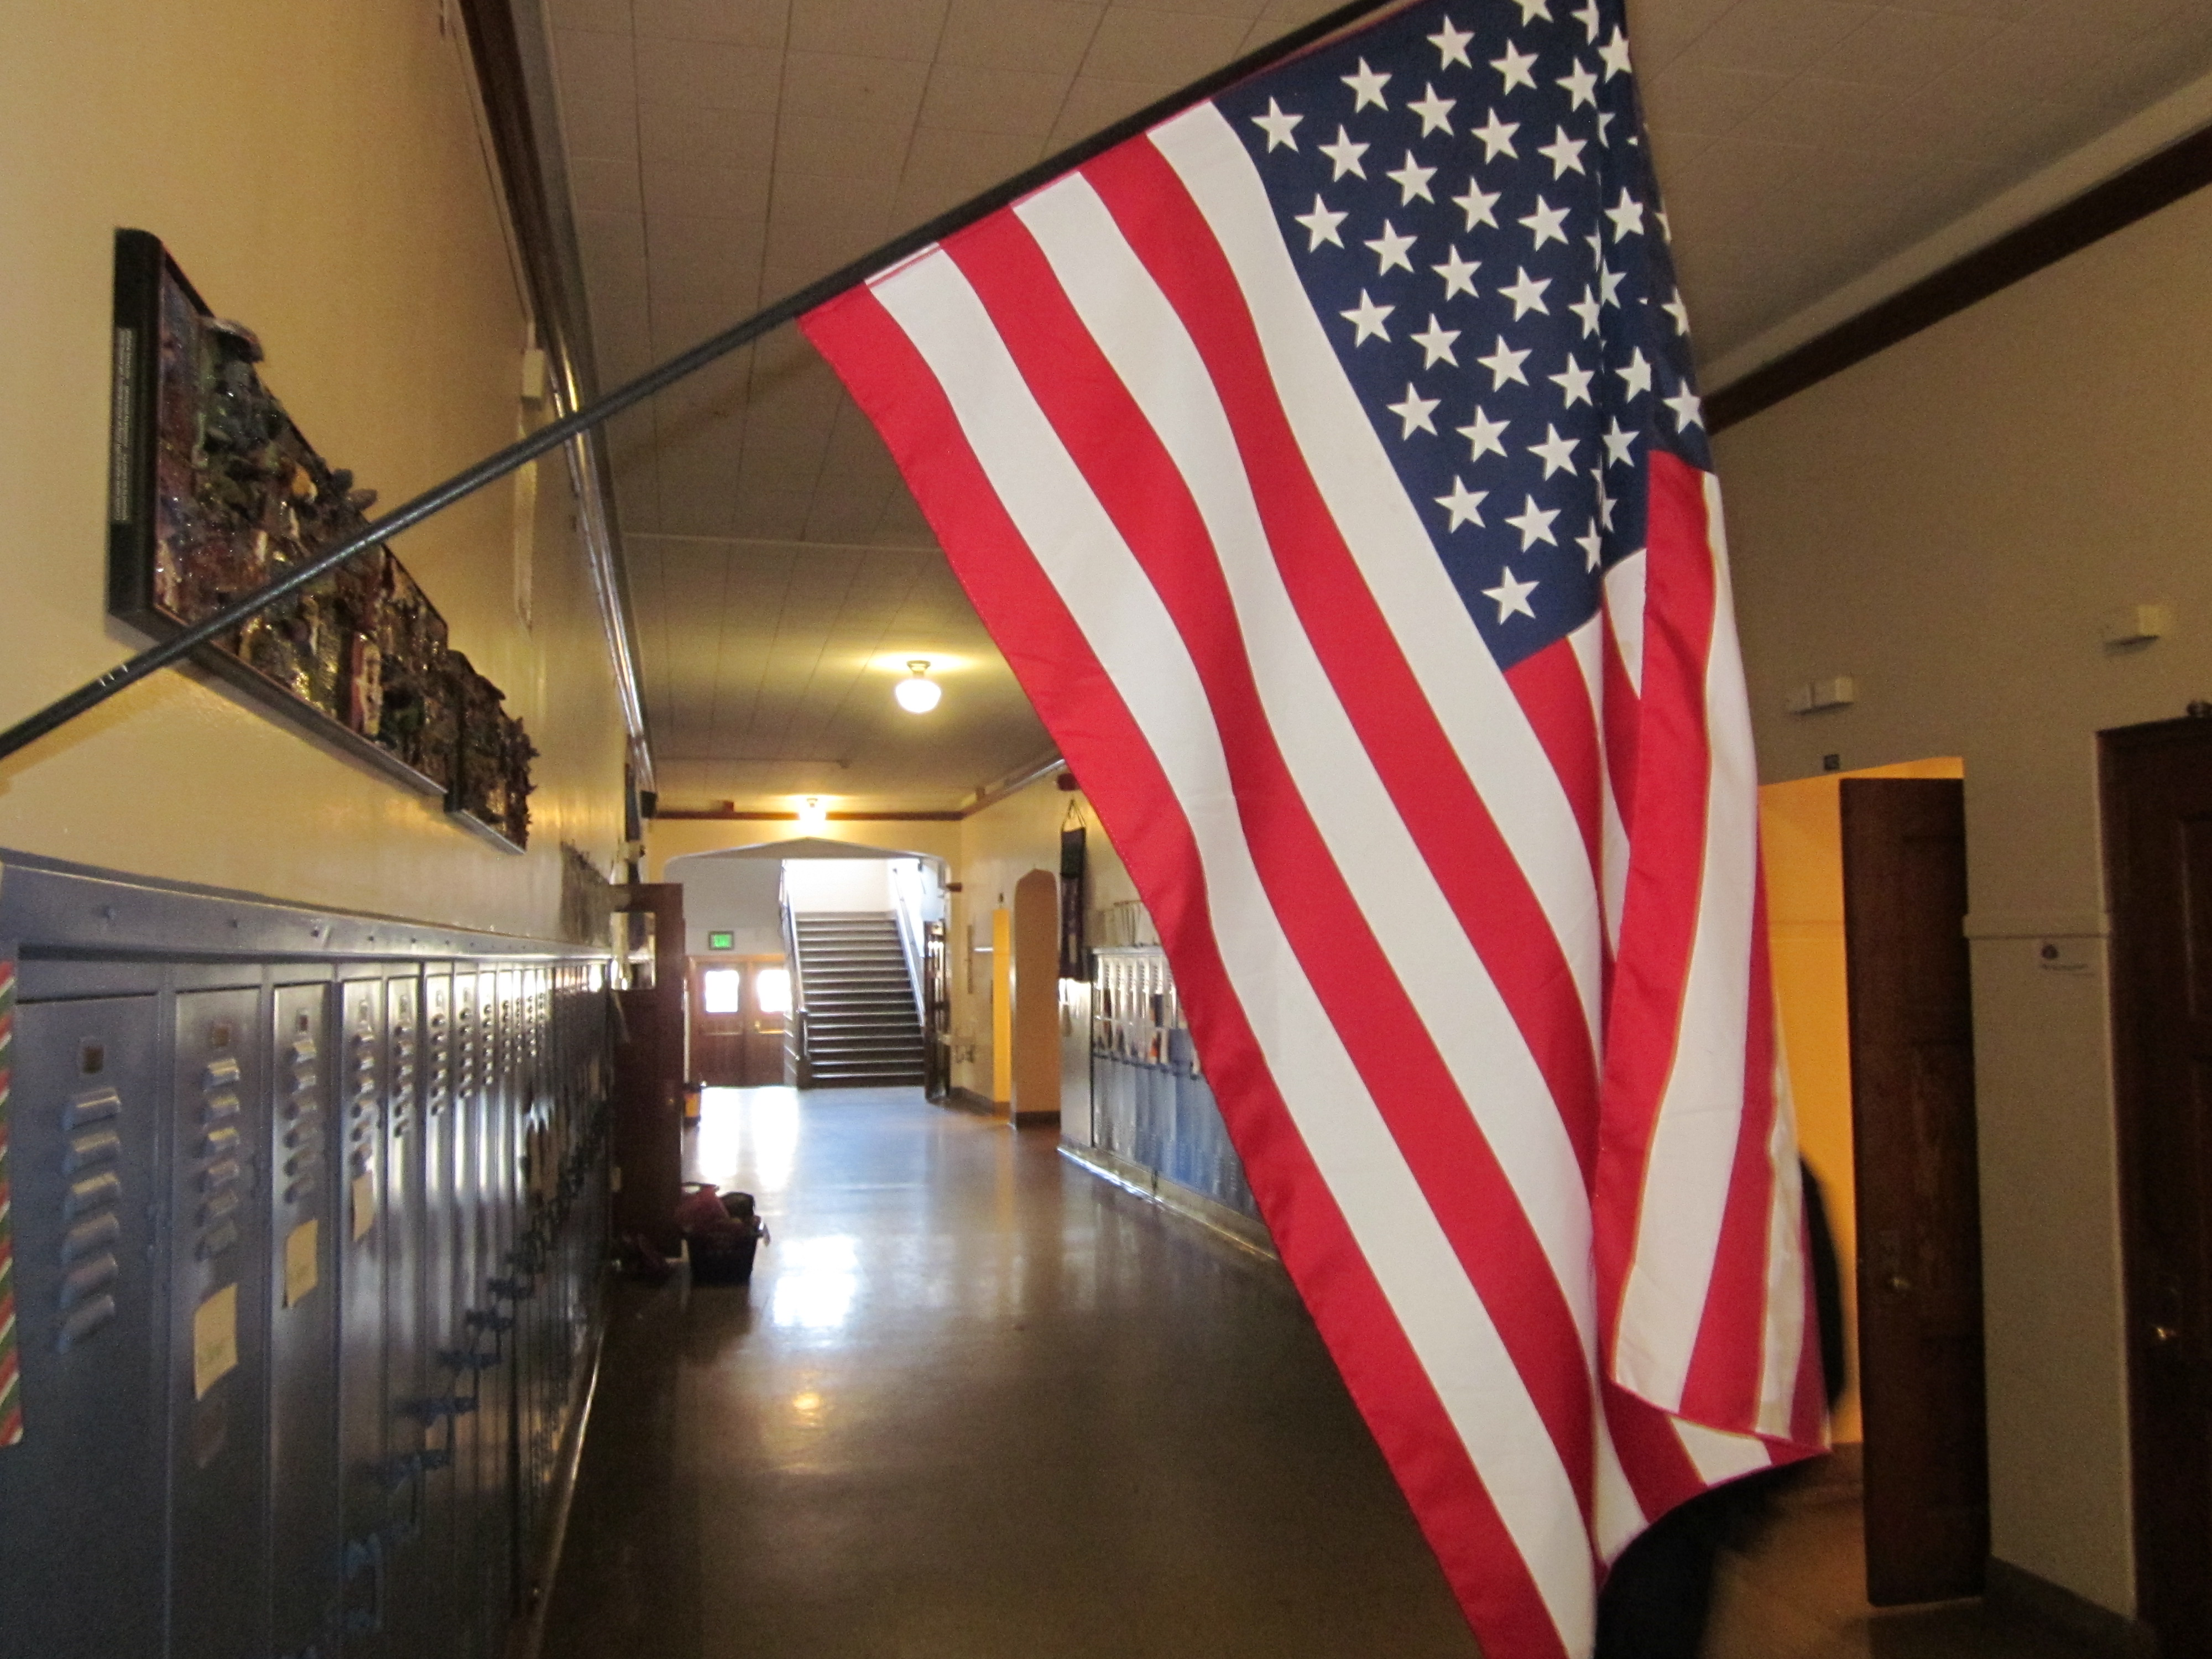 Photo: School hallway, flag